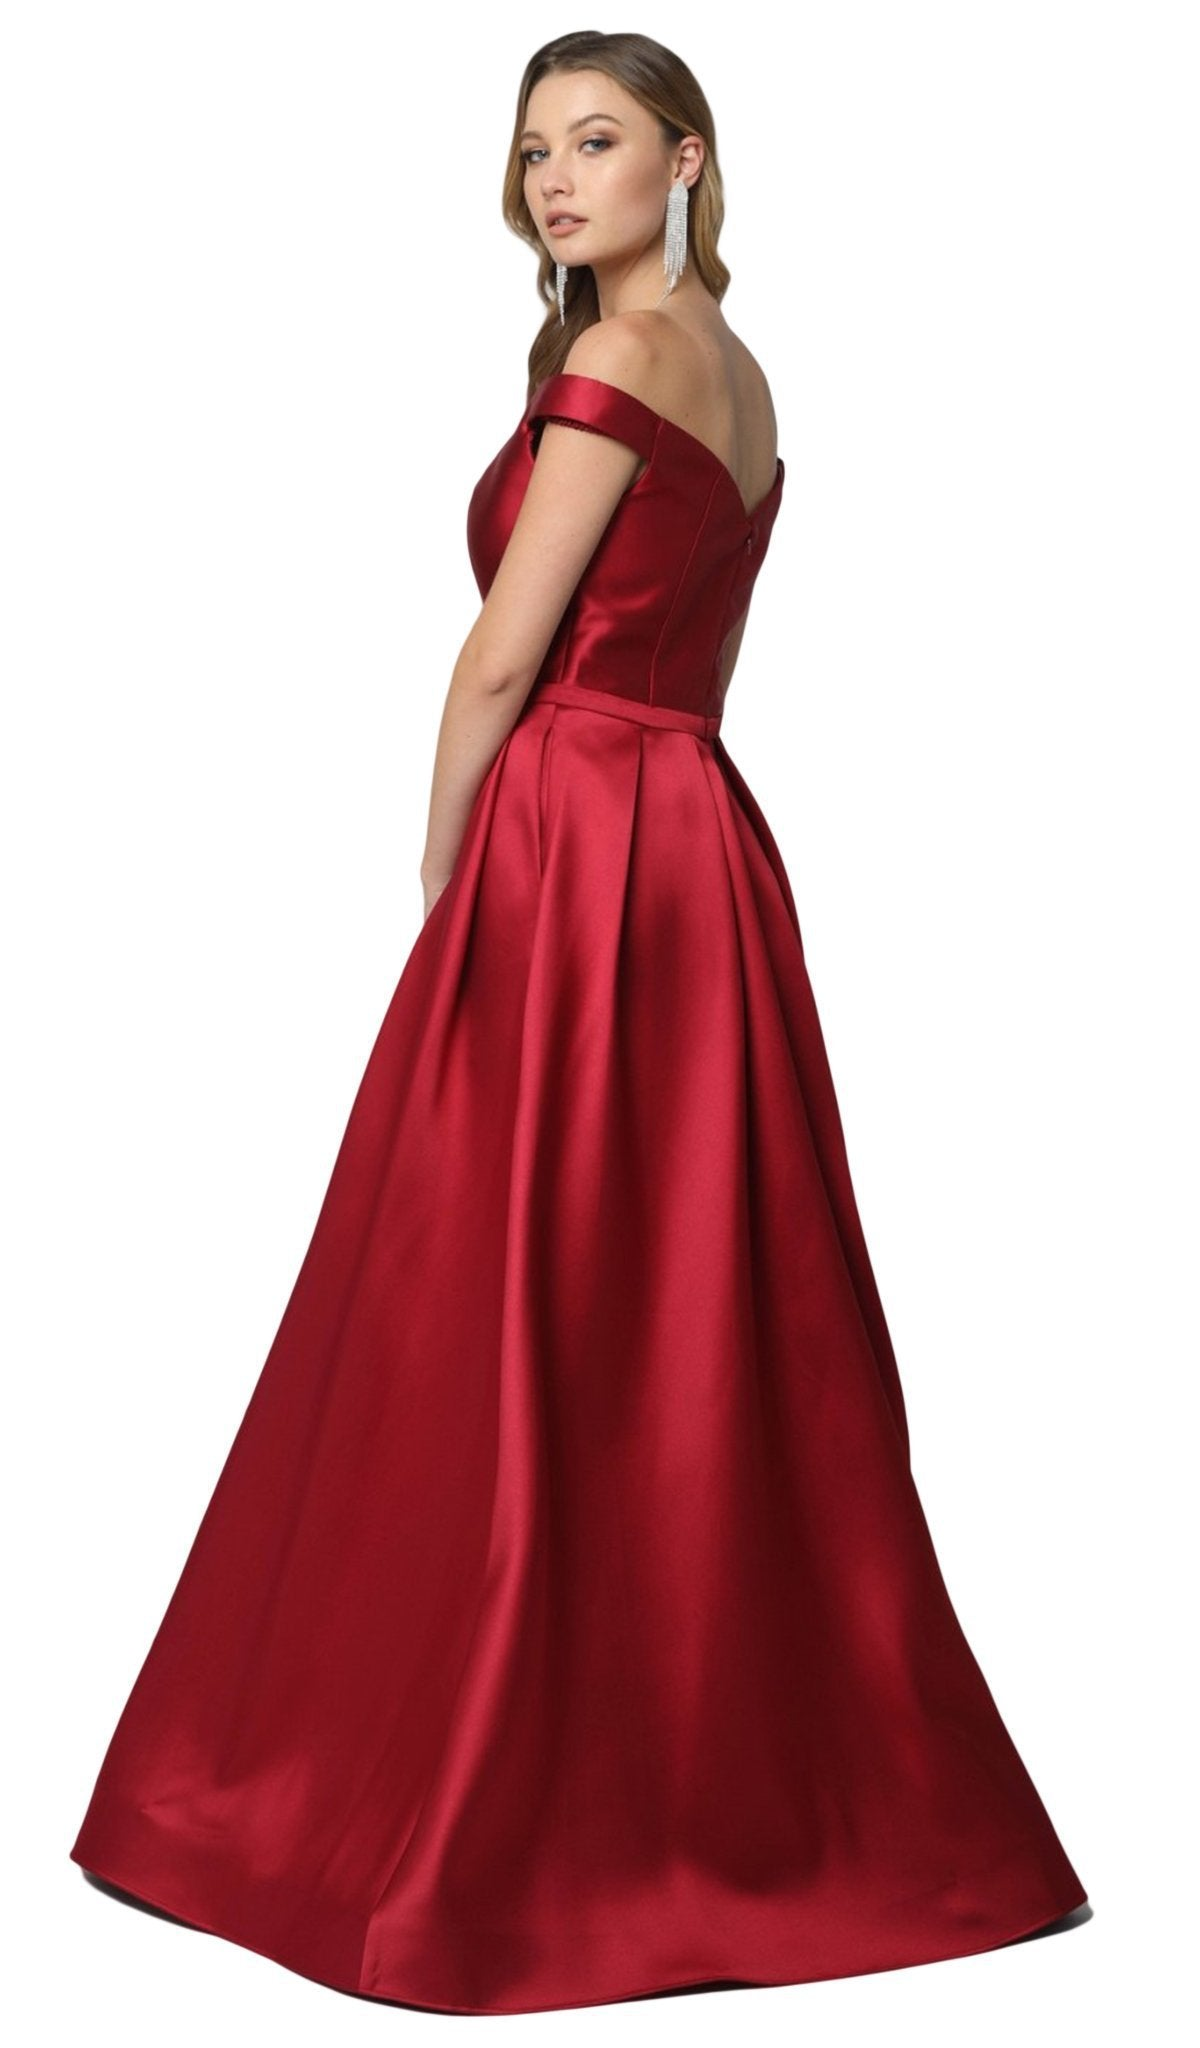 Nox Anabel - C007 Sleek Off Shoulder Mikado A-Line Gown In Red